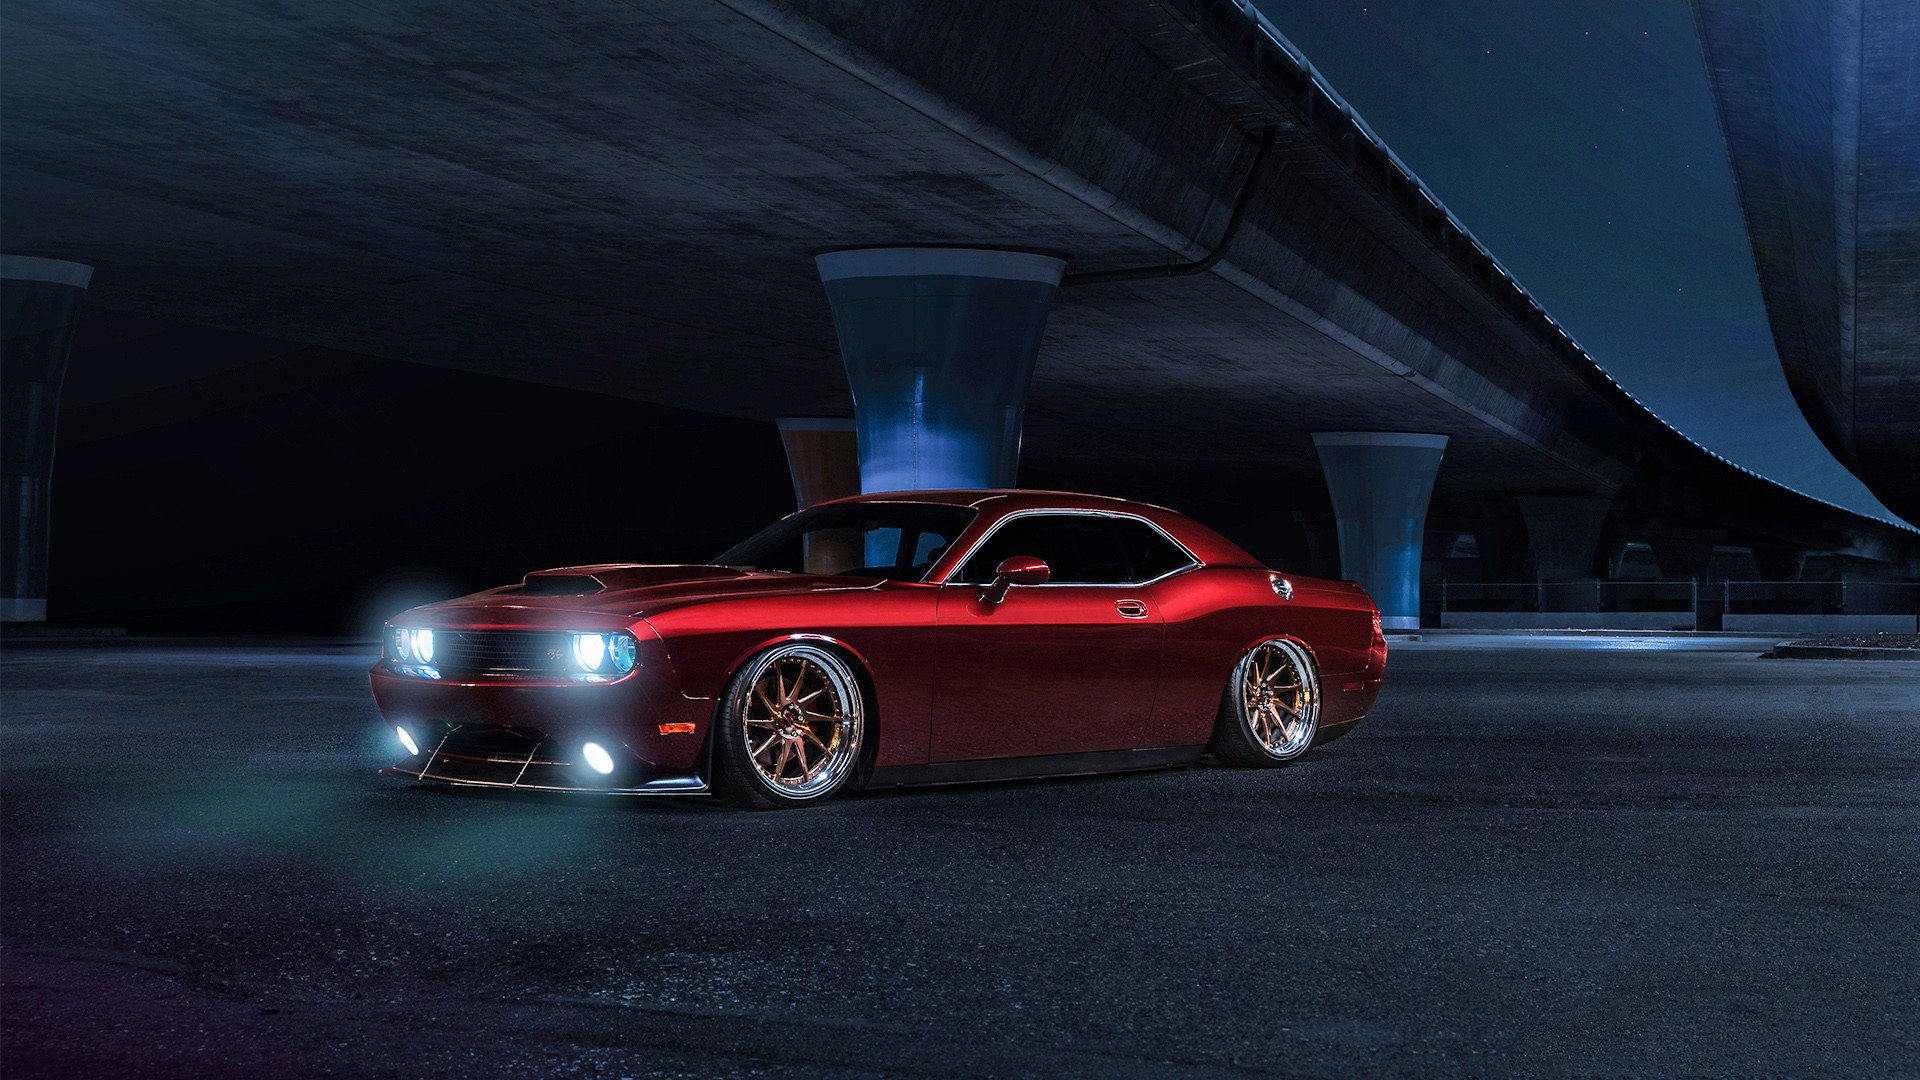 Wallpaper American Muscle Car Dodge Challenger Avant Garde Wheels Wallpapers Hd